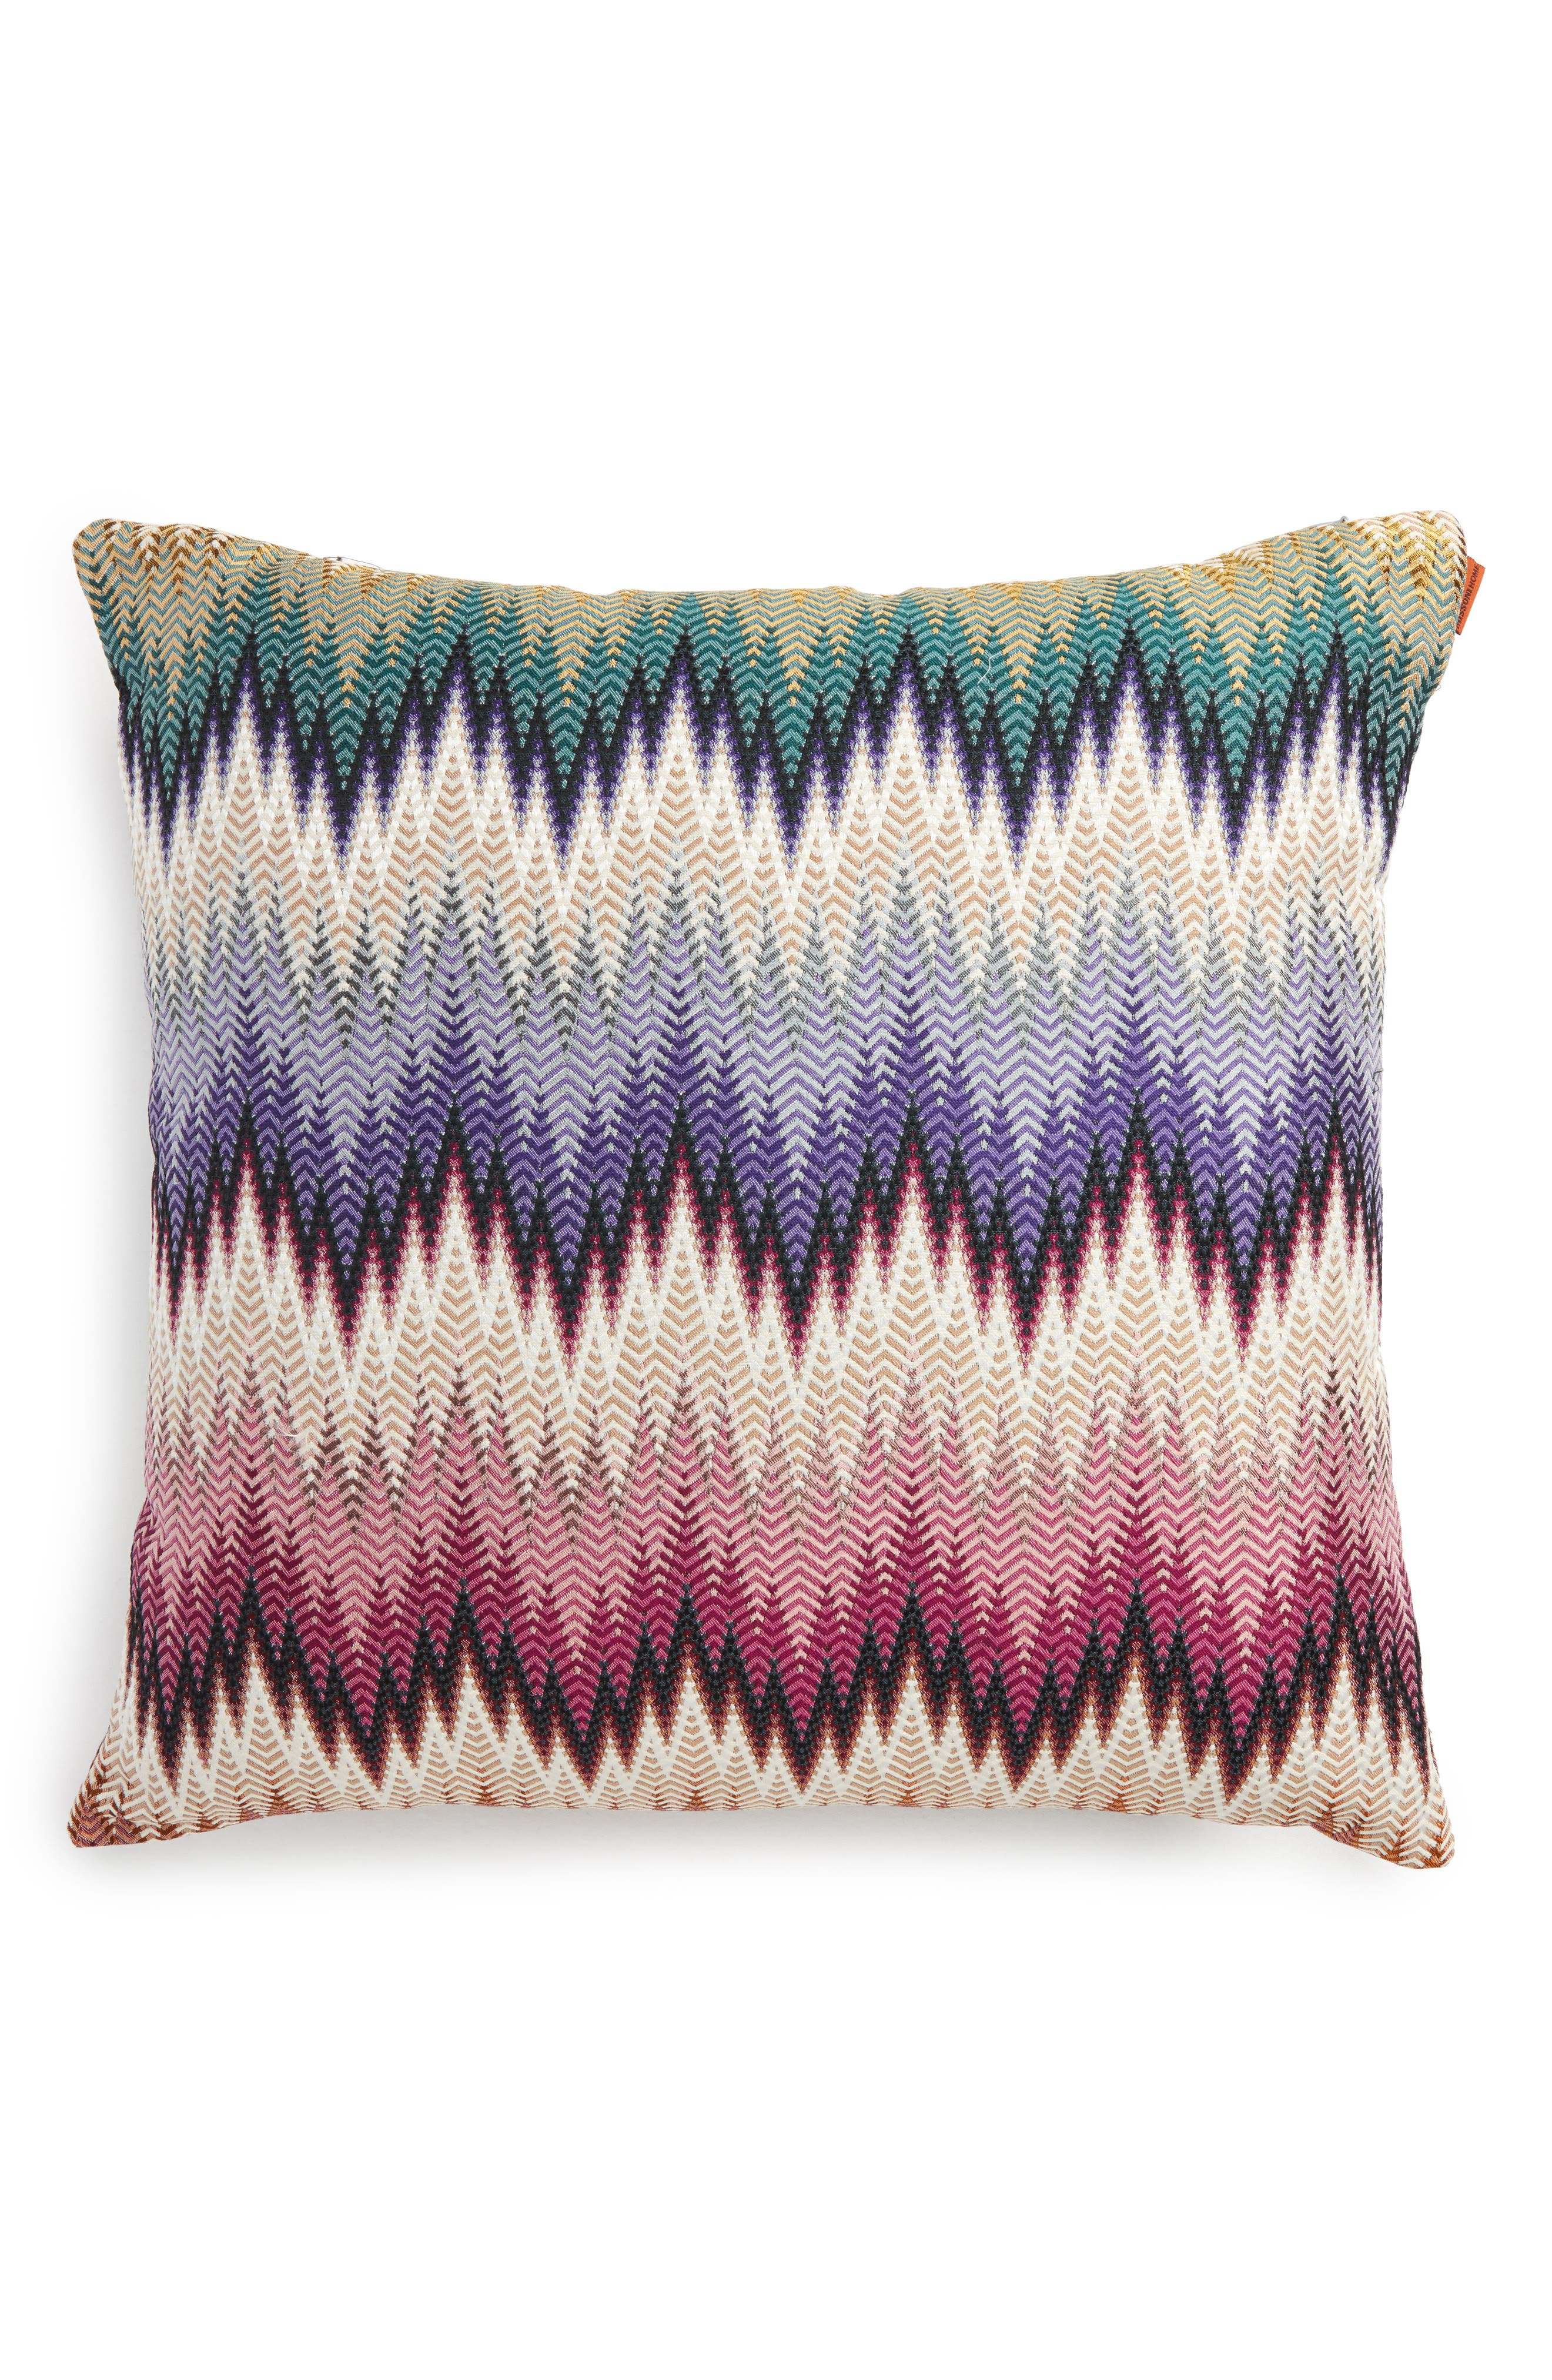 Phrae Accent Pillow,                             Alternate thumbnail 2, color,                             MULTI COLOR